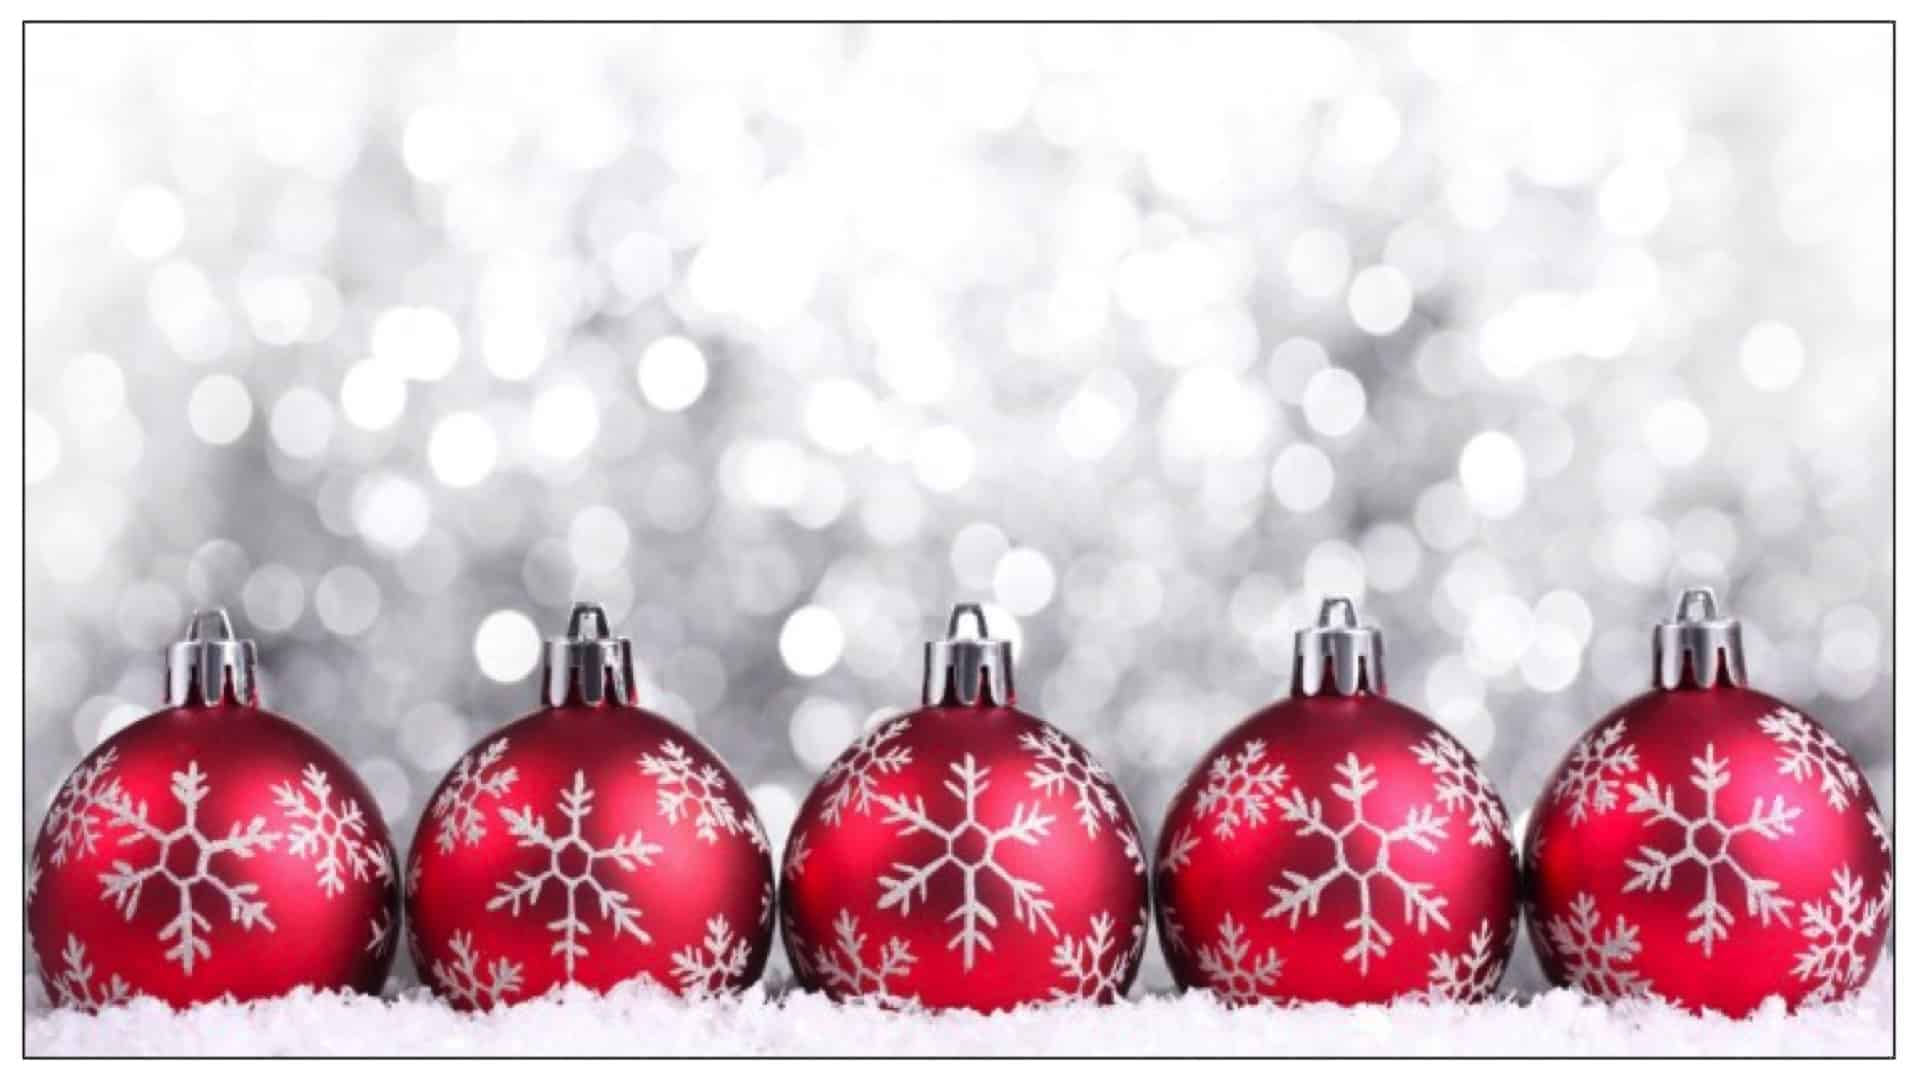 A row of red and silver festive baubles are shown across the bottom with a white, glittery background behind.